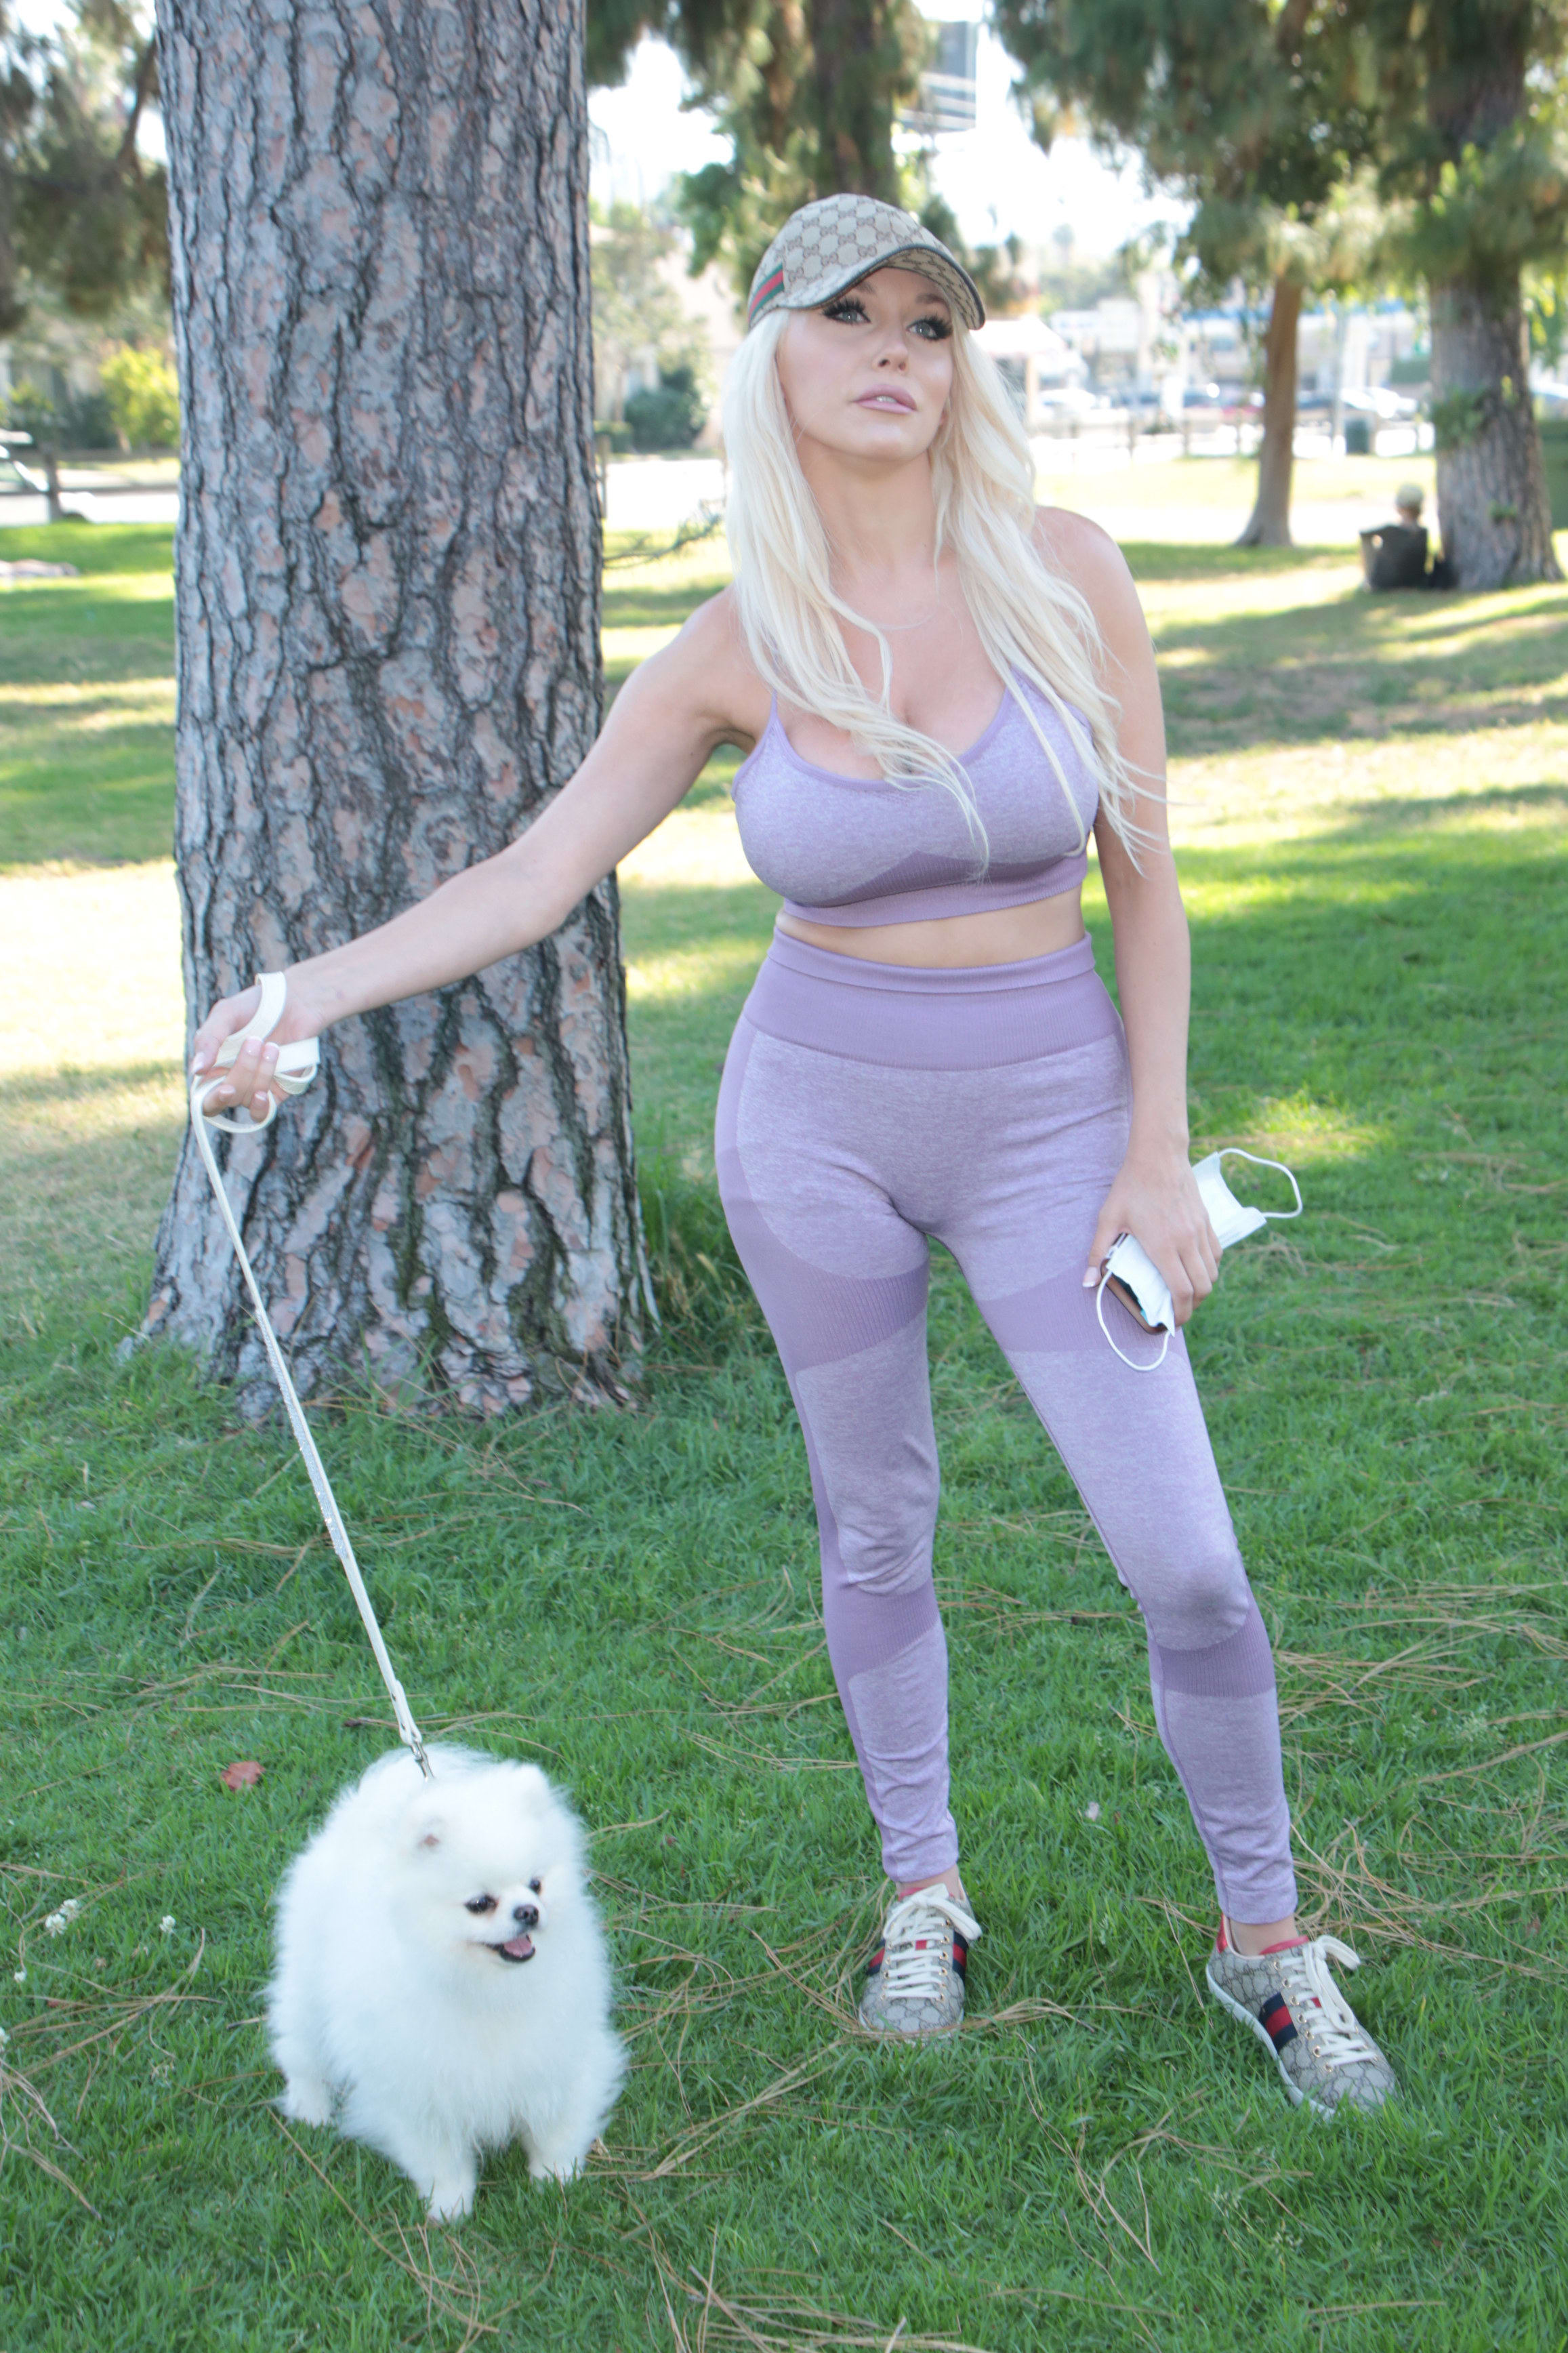 Courtney in a park with their dog